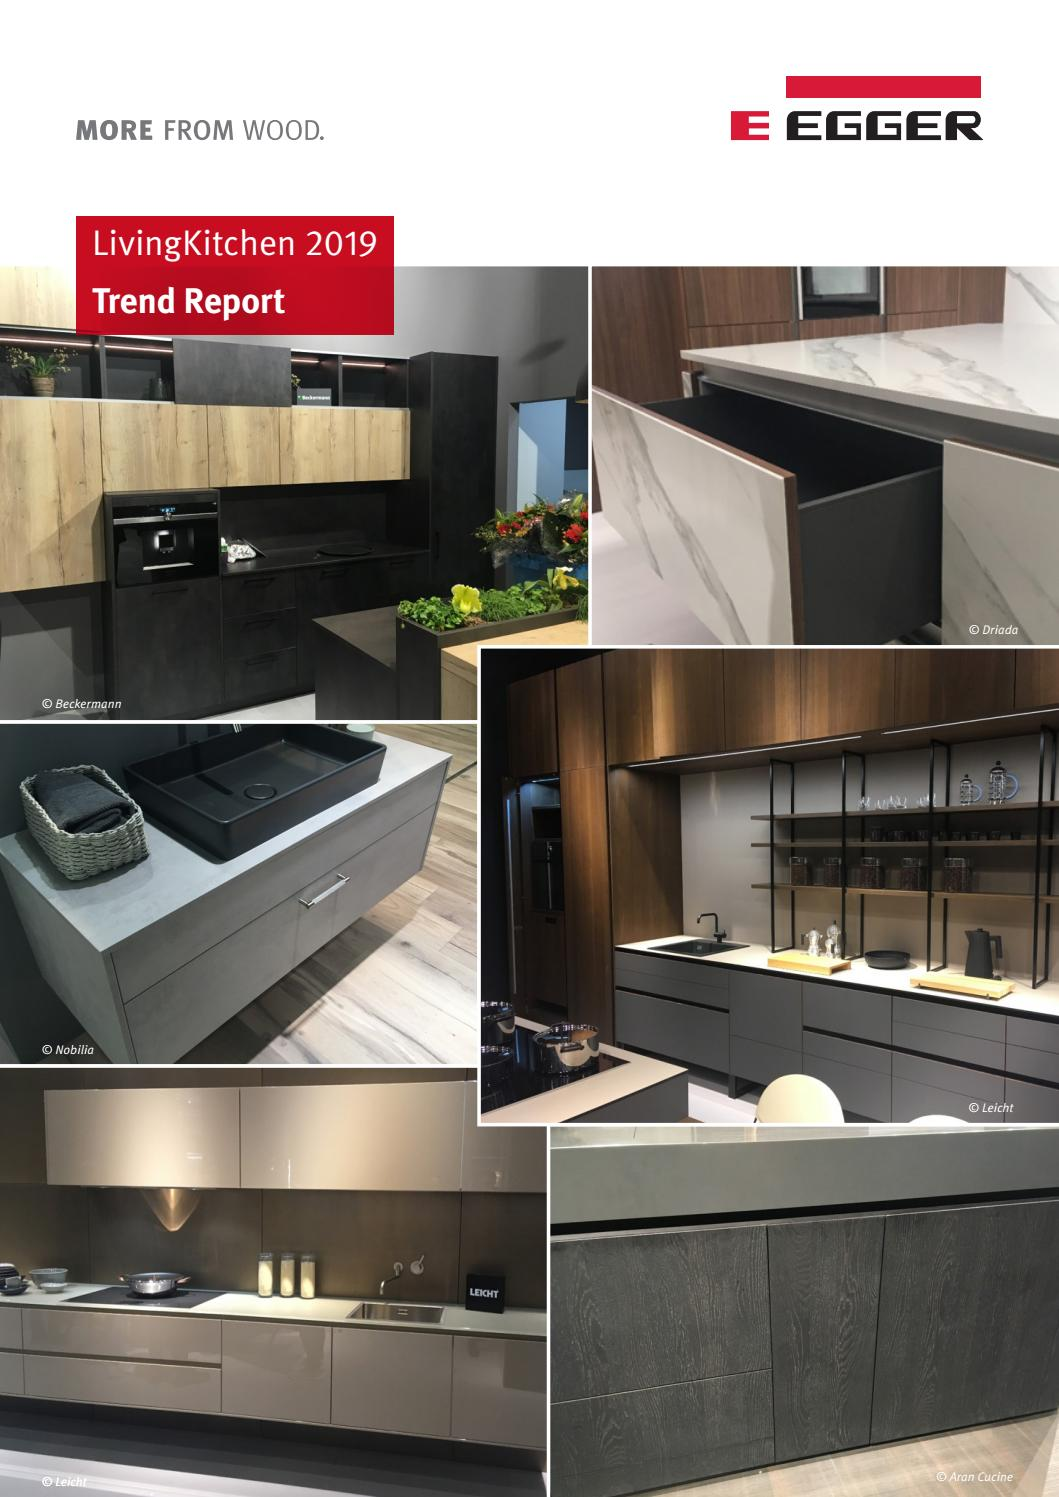 Nobilia Küche Cosmo Trend Report Livingkitchen 2019 By Fritz Egger Gmbh Co Og Issuu